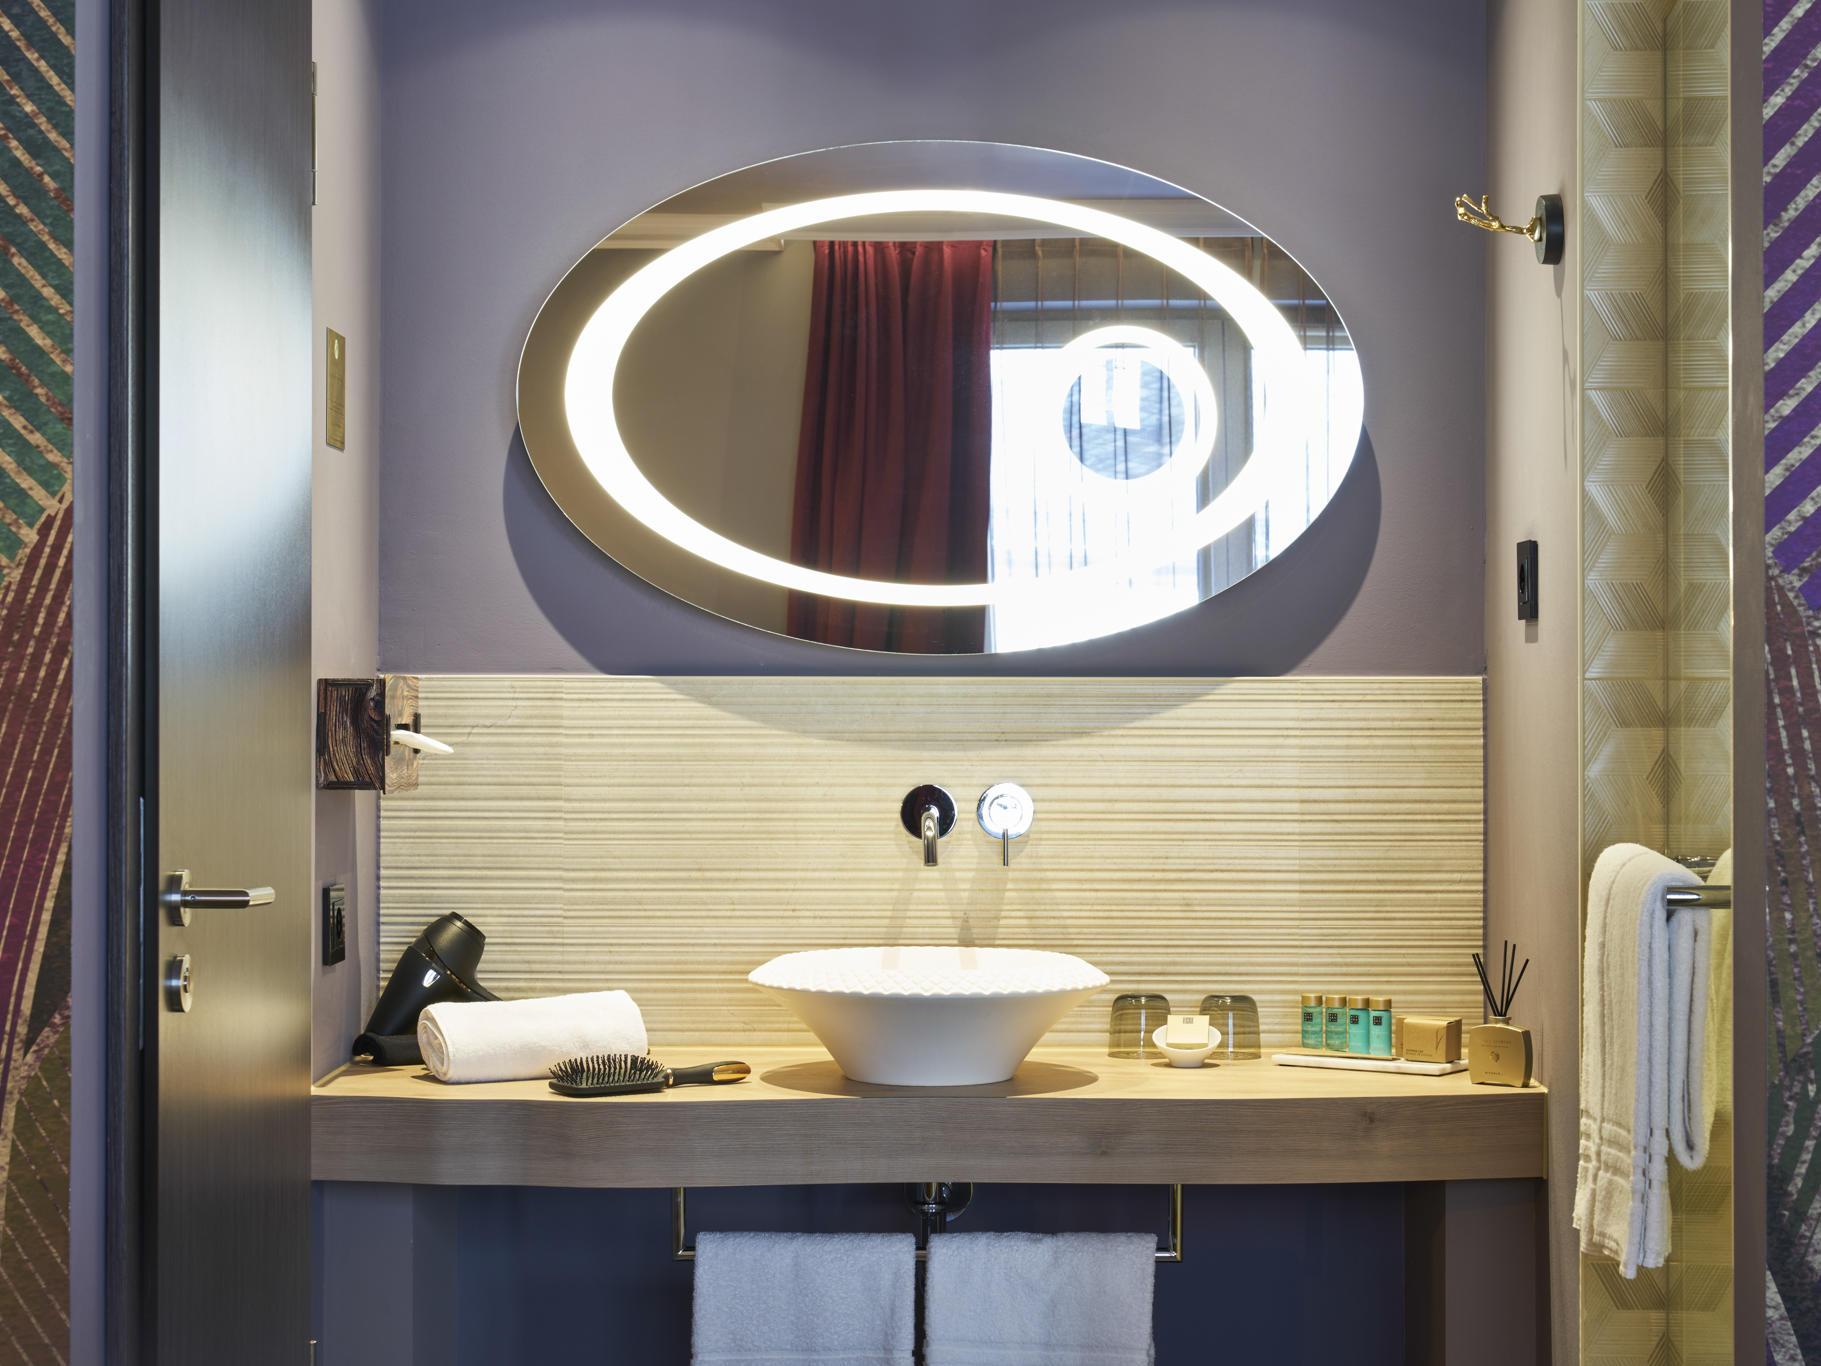 Grand Deluxe Triple Room at Classic Hotel Harmonie in Cologne